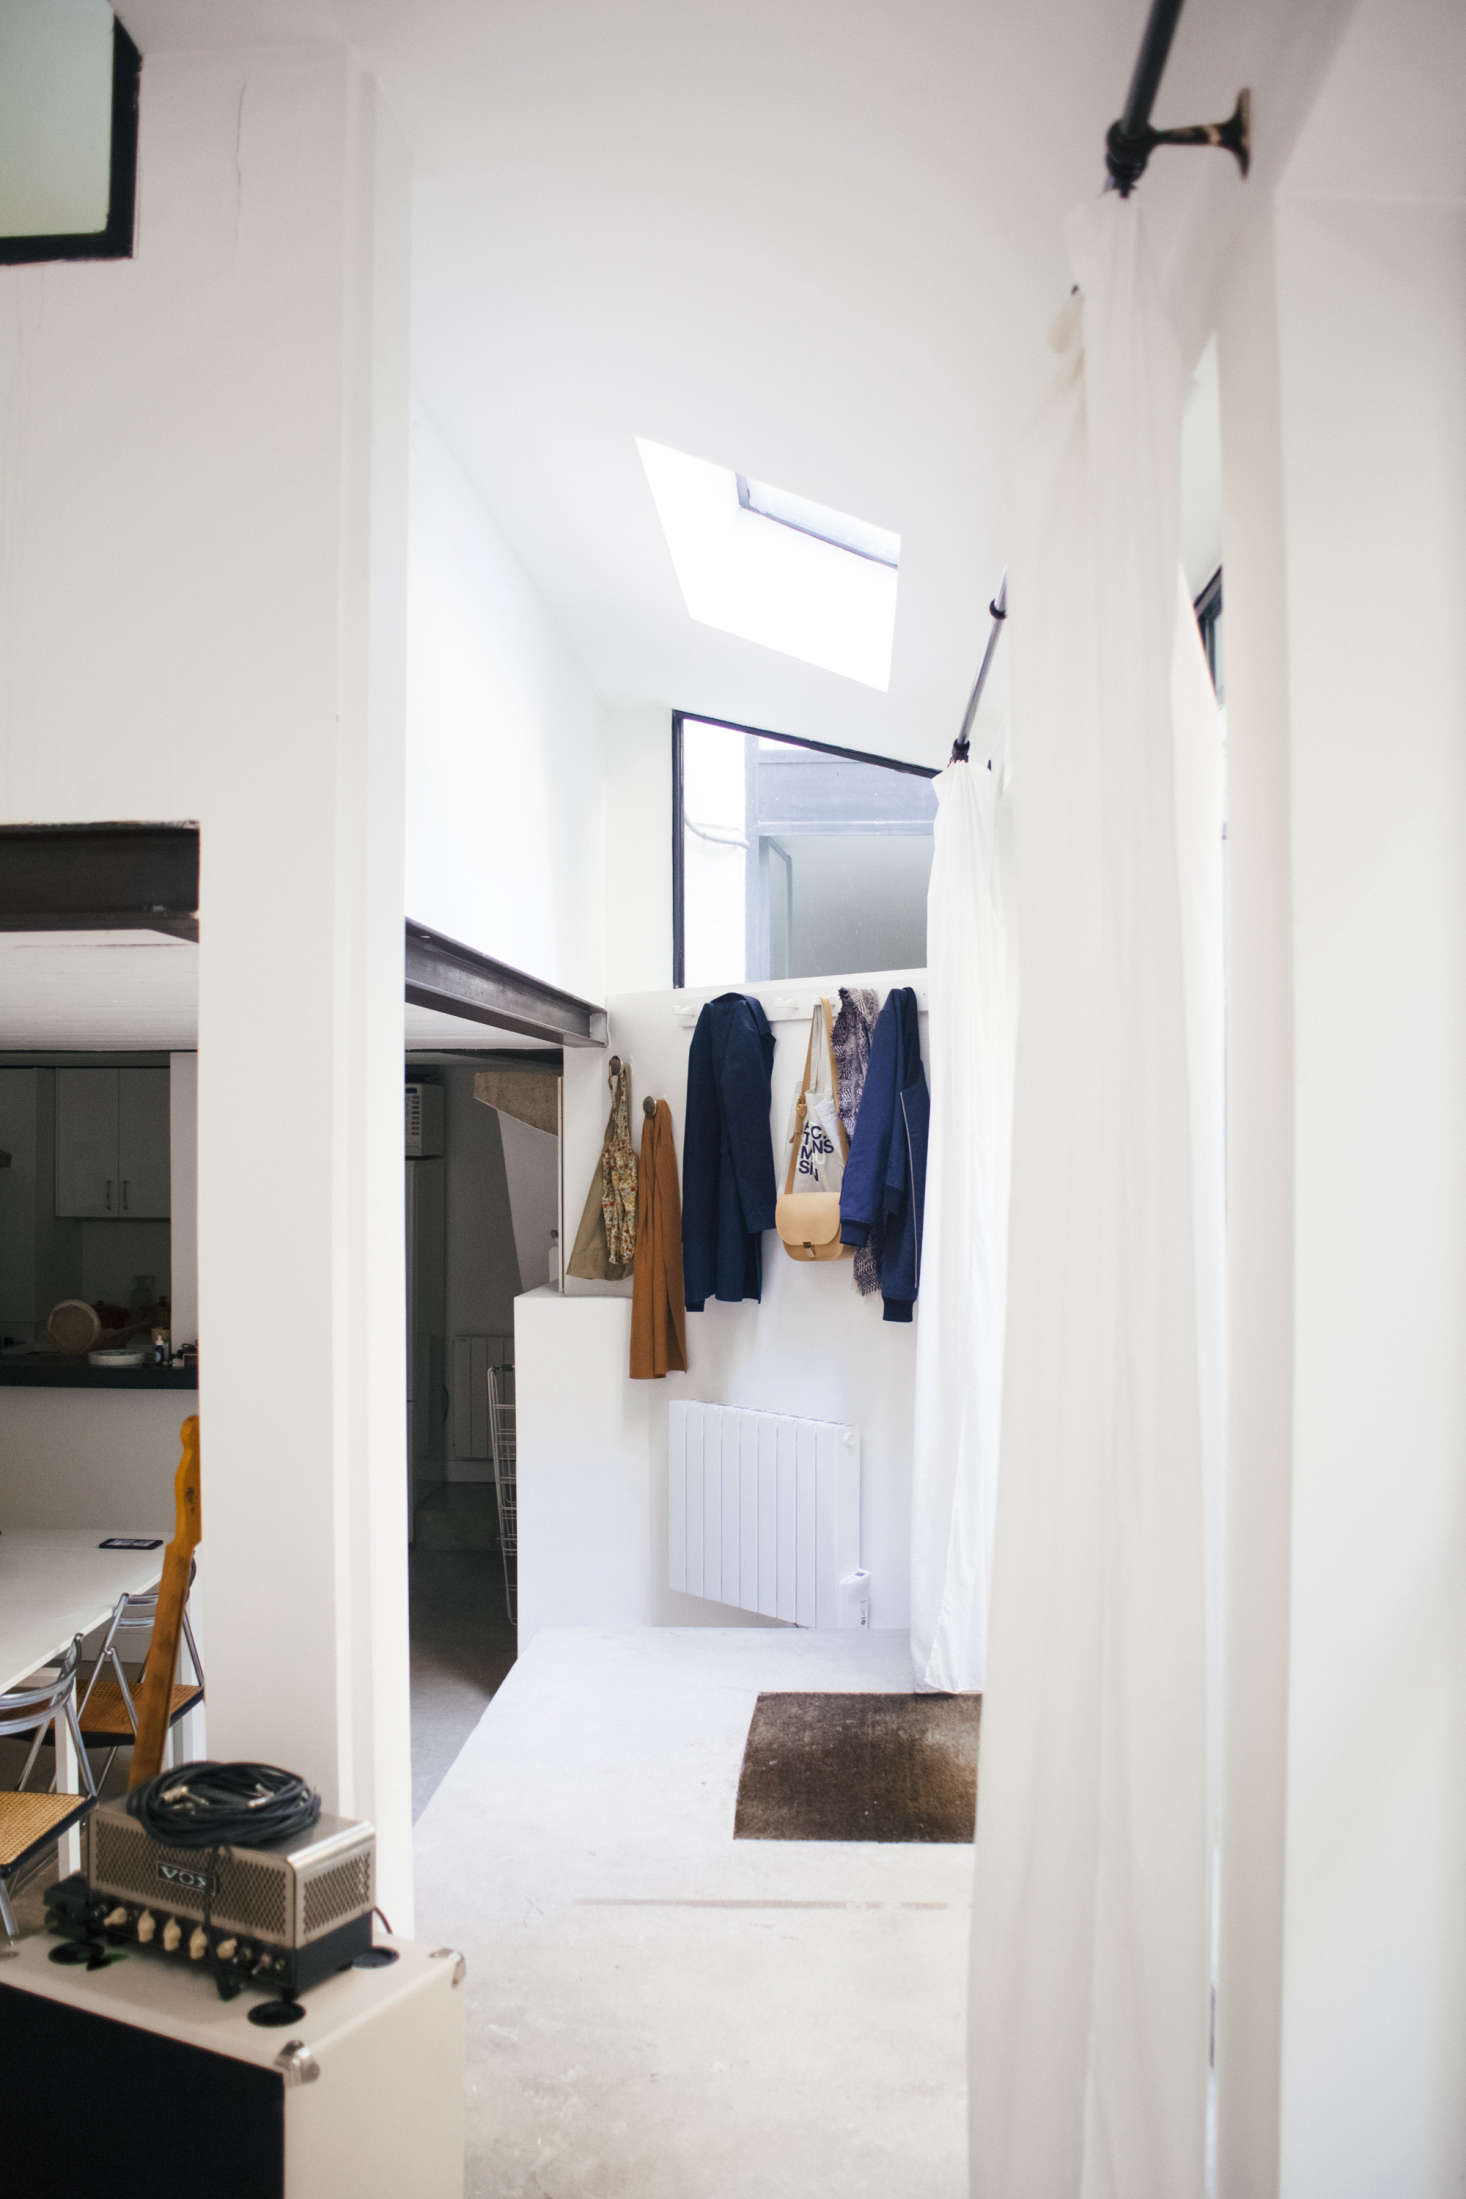 The inset coco mat came with the apartment. Lucile and Michel created an instant entryway with a white-painted peg rail.